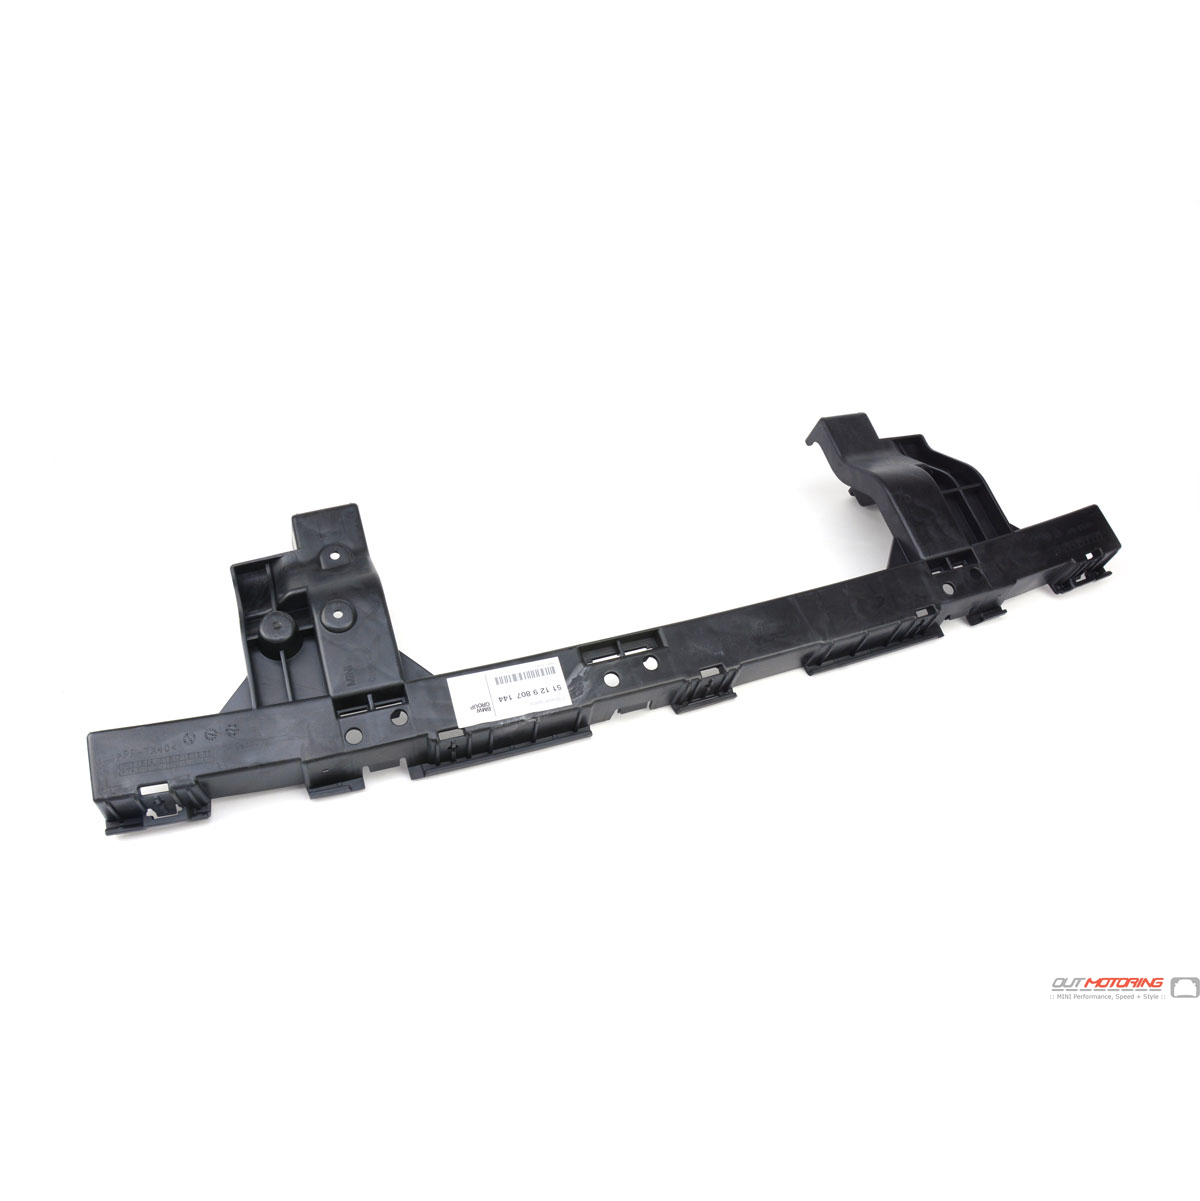 51129807144 MINI Cooper Countryman Pacement Rear Guide